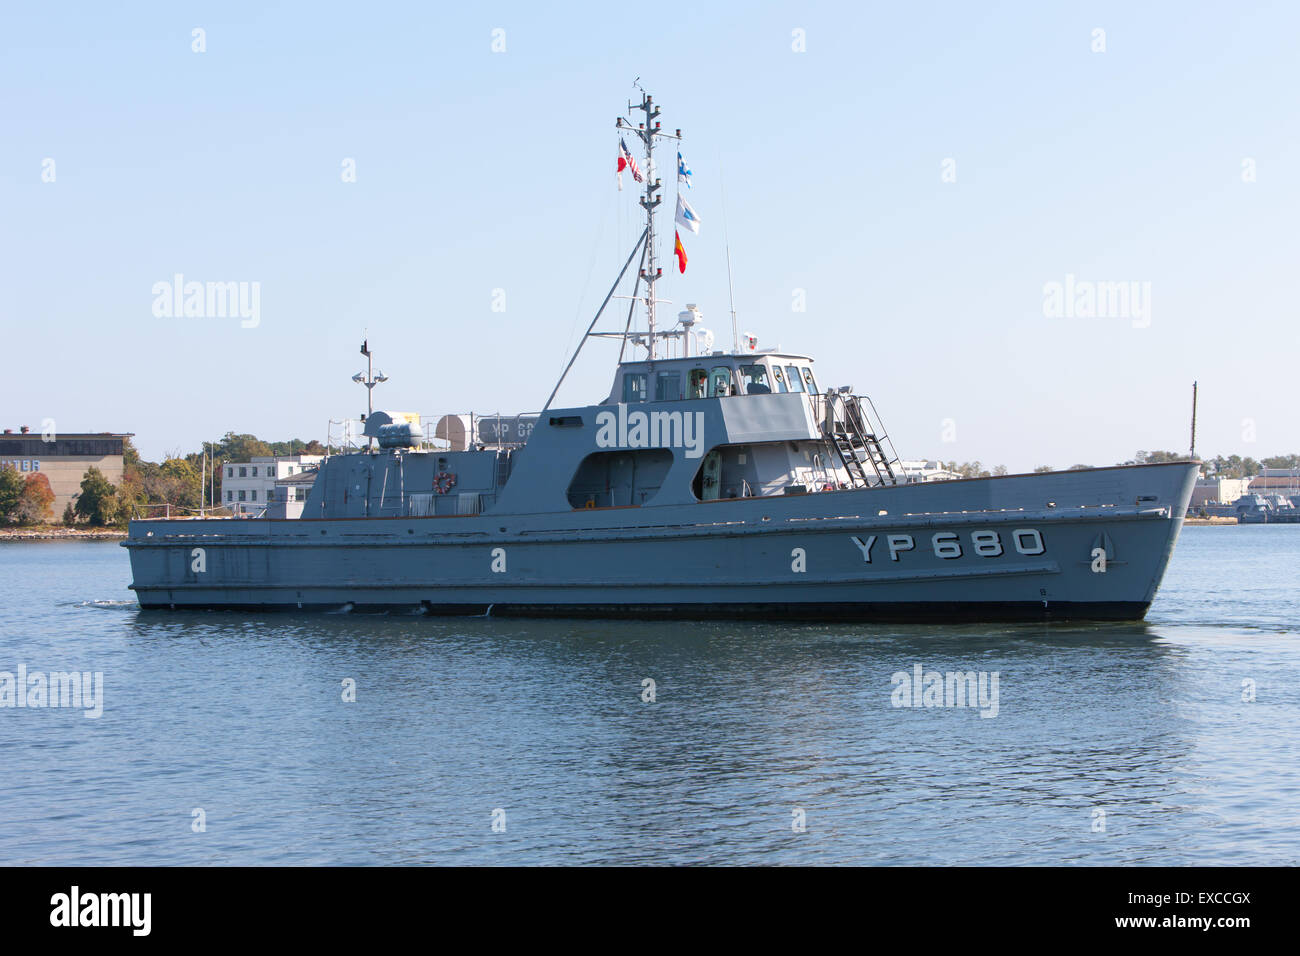 A US Navy Yard Patrol Craft on the Severn River in Annapolis, Maryland - Stock Image